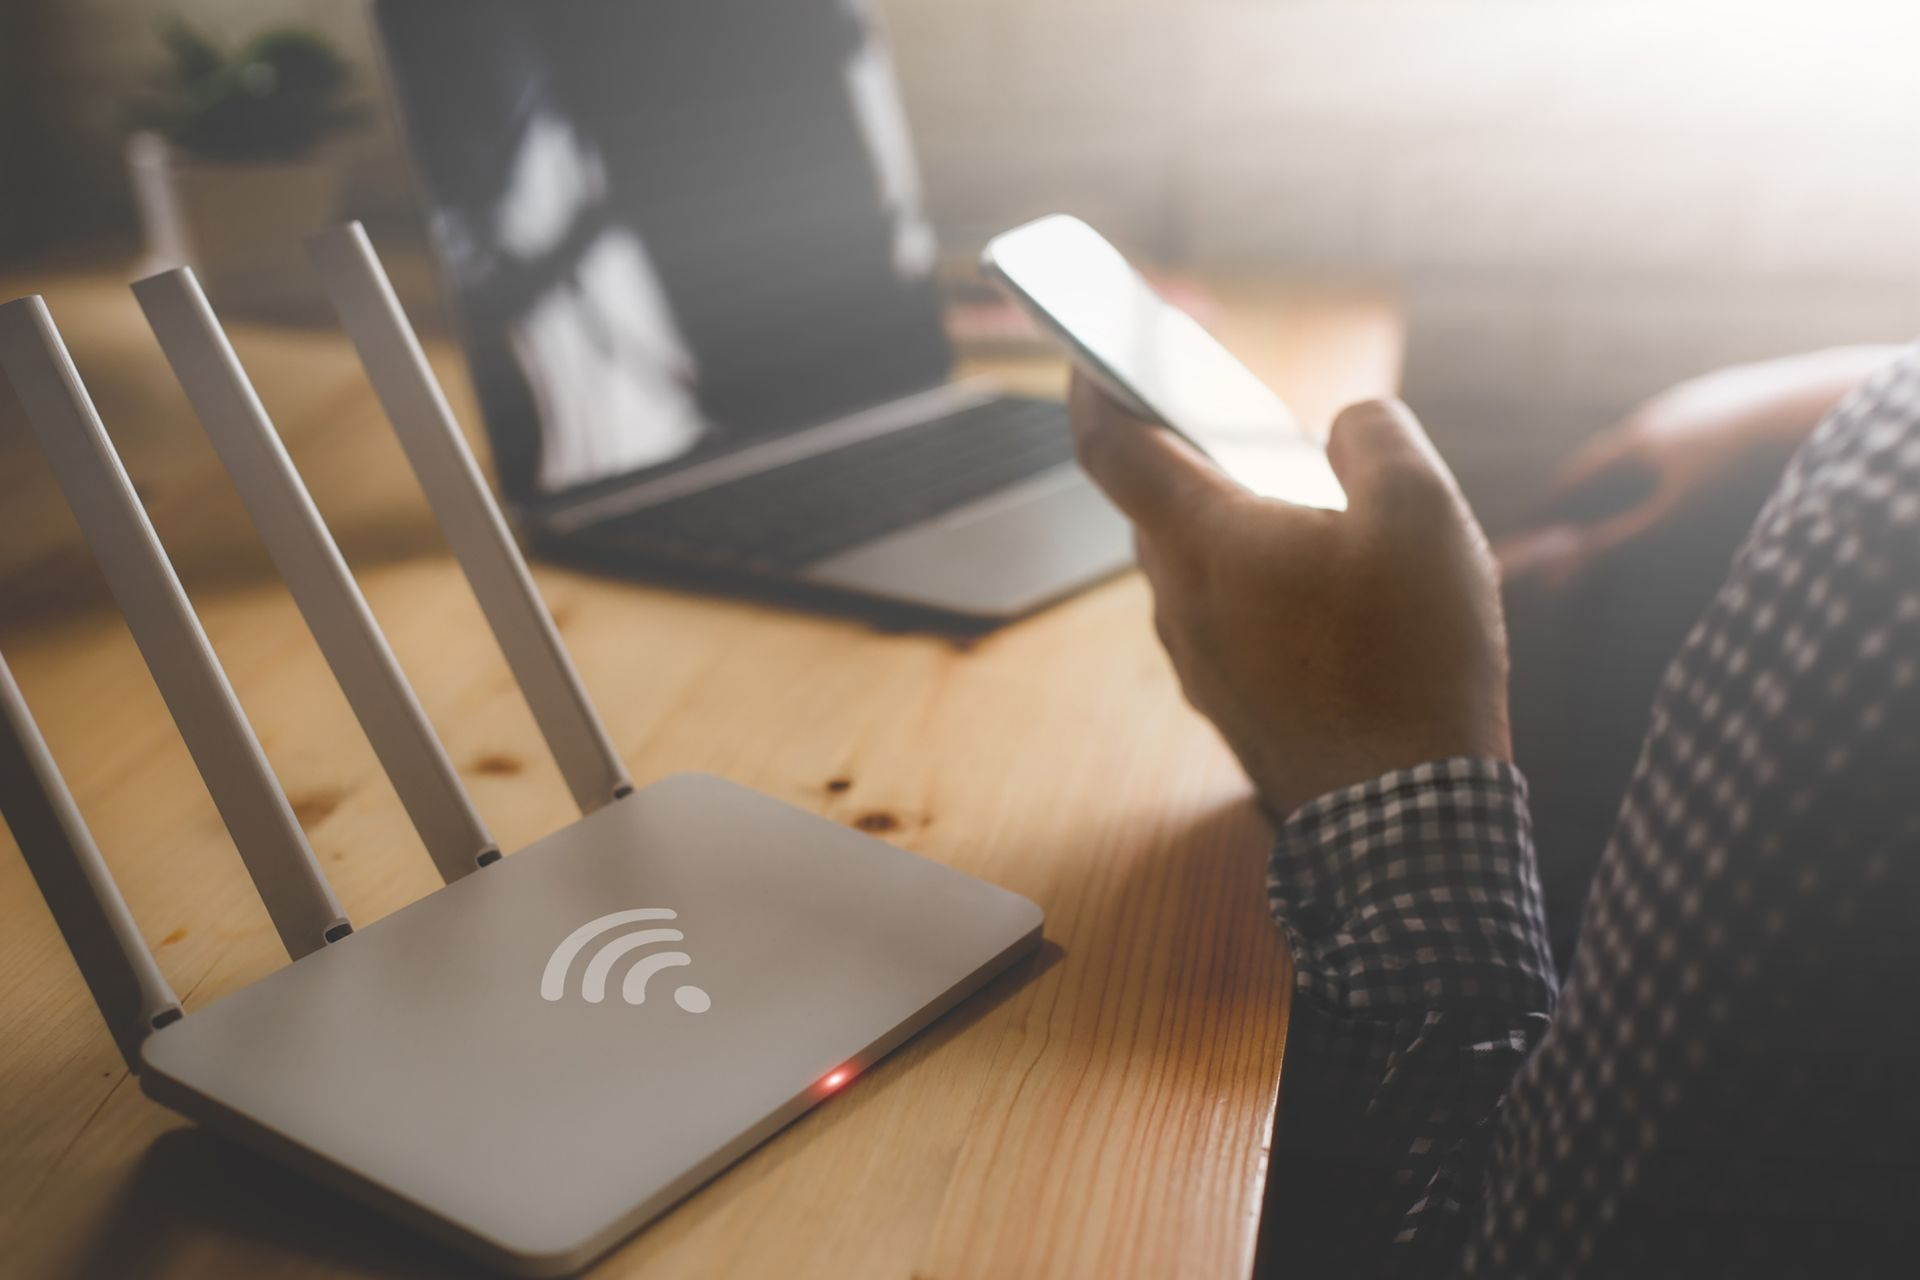 Wow! Keith Barker Shows How He Uses NetSpot To Improve Wi-Fi Connection